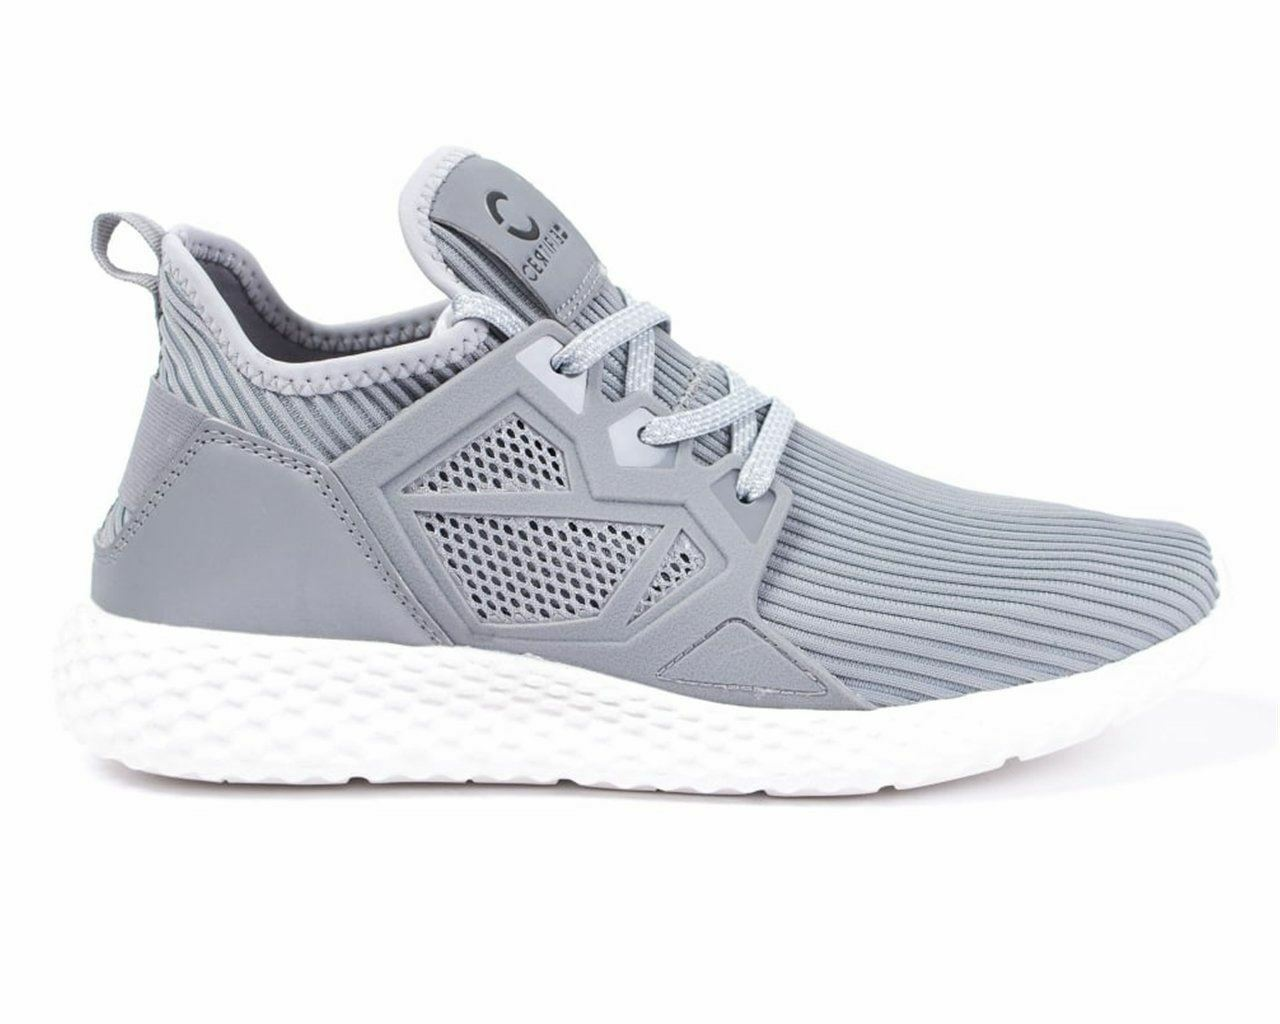 Certified Gris London CT1000 Mesh Trainers Gris Certified Blanco 1d7524